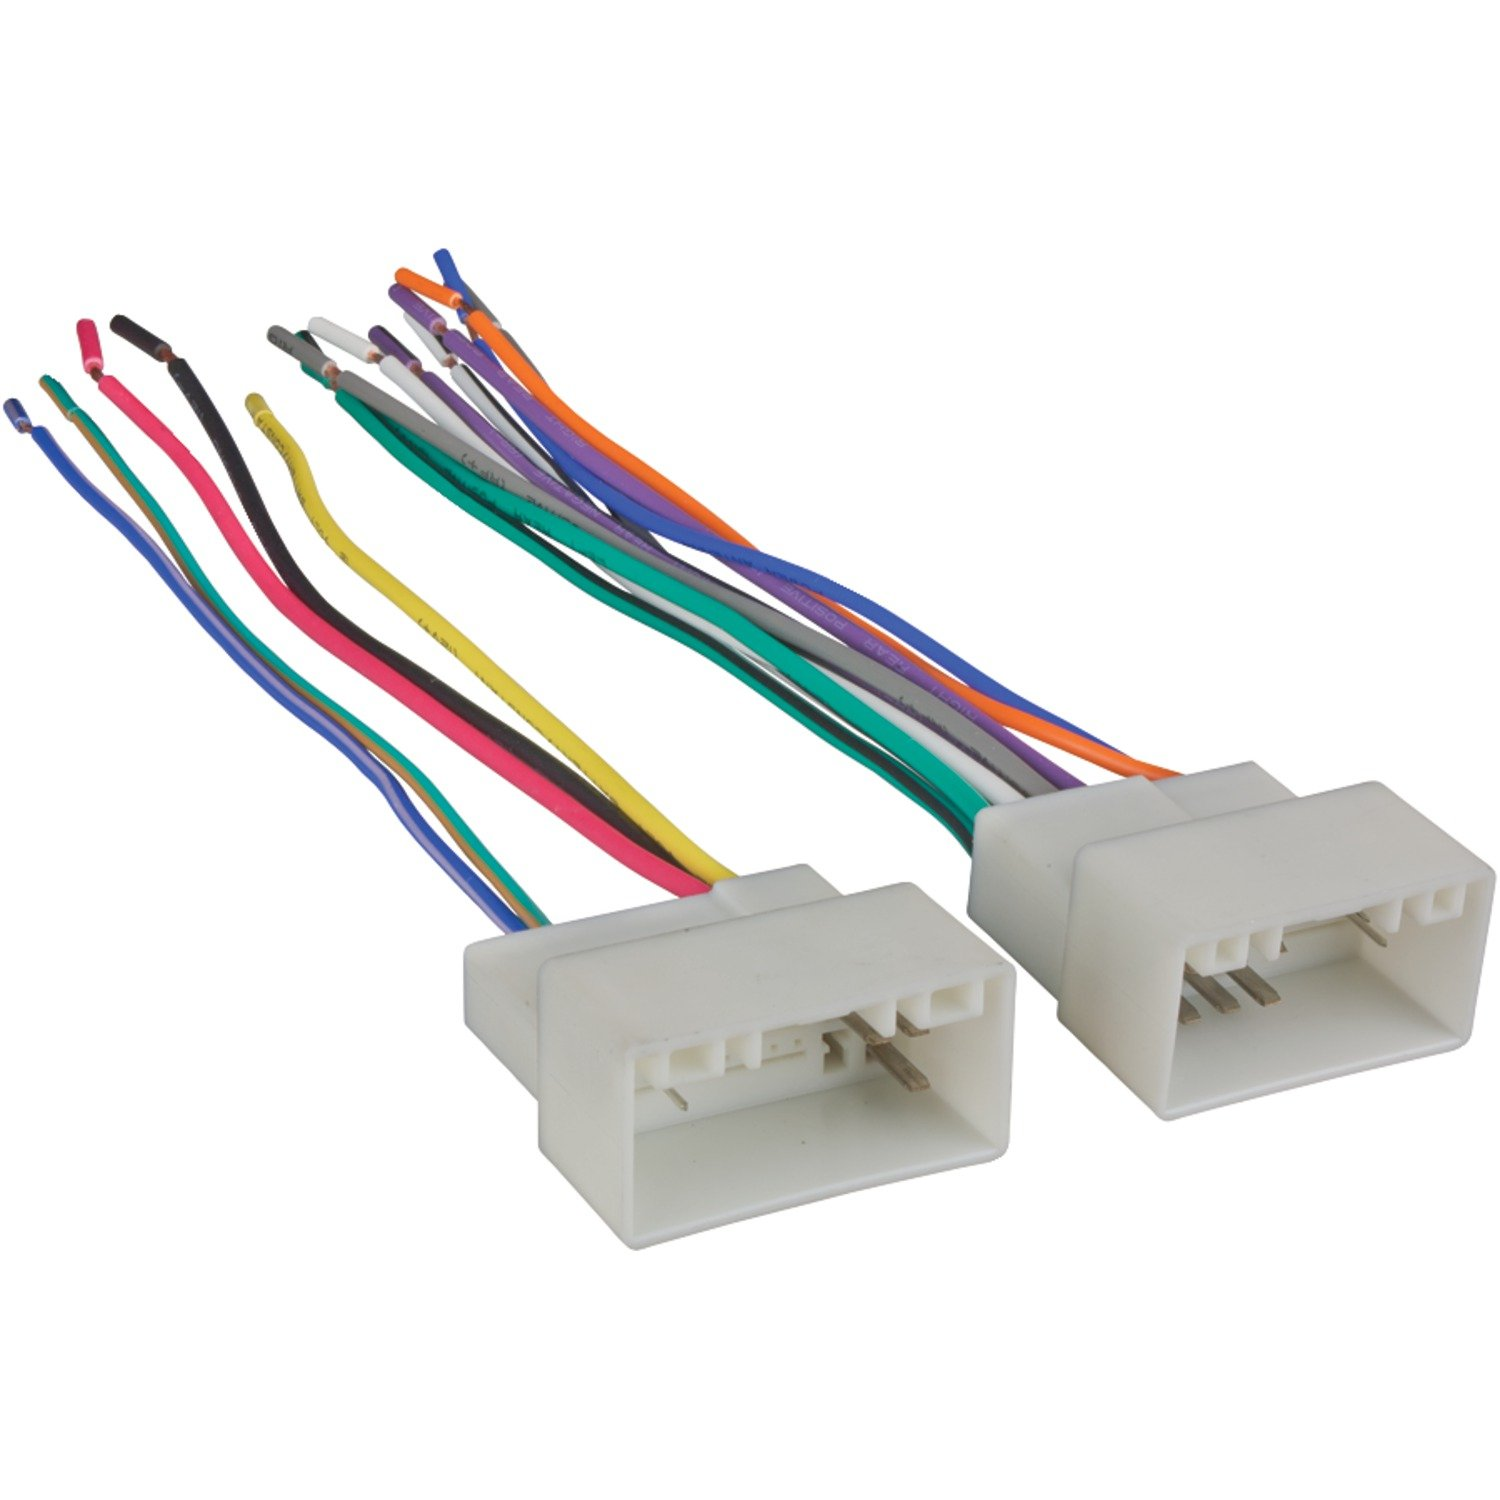 61Pem3k6tEL._SL1500_ amazon com metra 70 7304 wiring harness for select 2010 up kia kia wiring harness at metegol.co